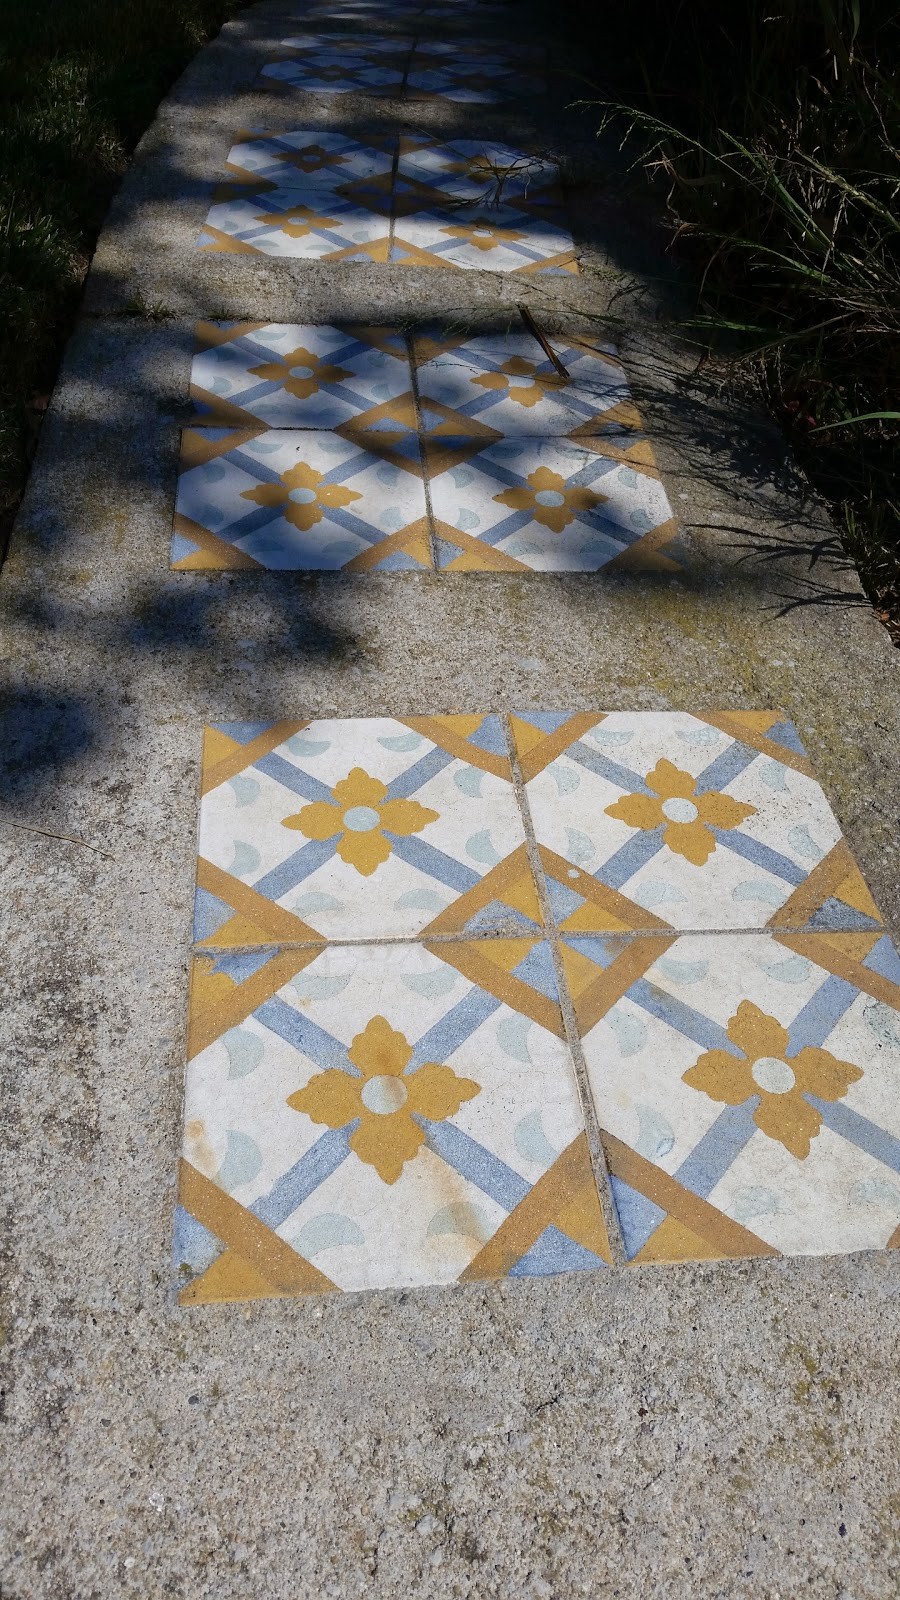 Patterned cement tile placed in a poured cement walkway